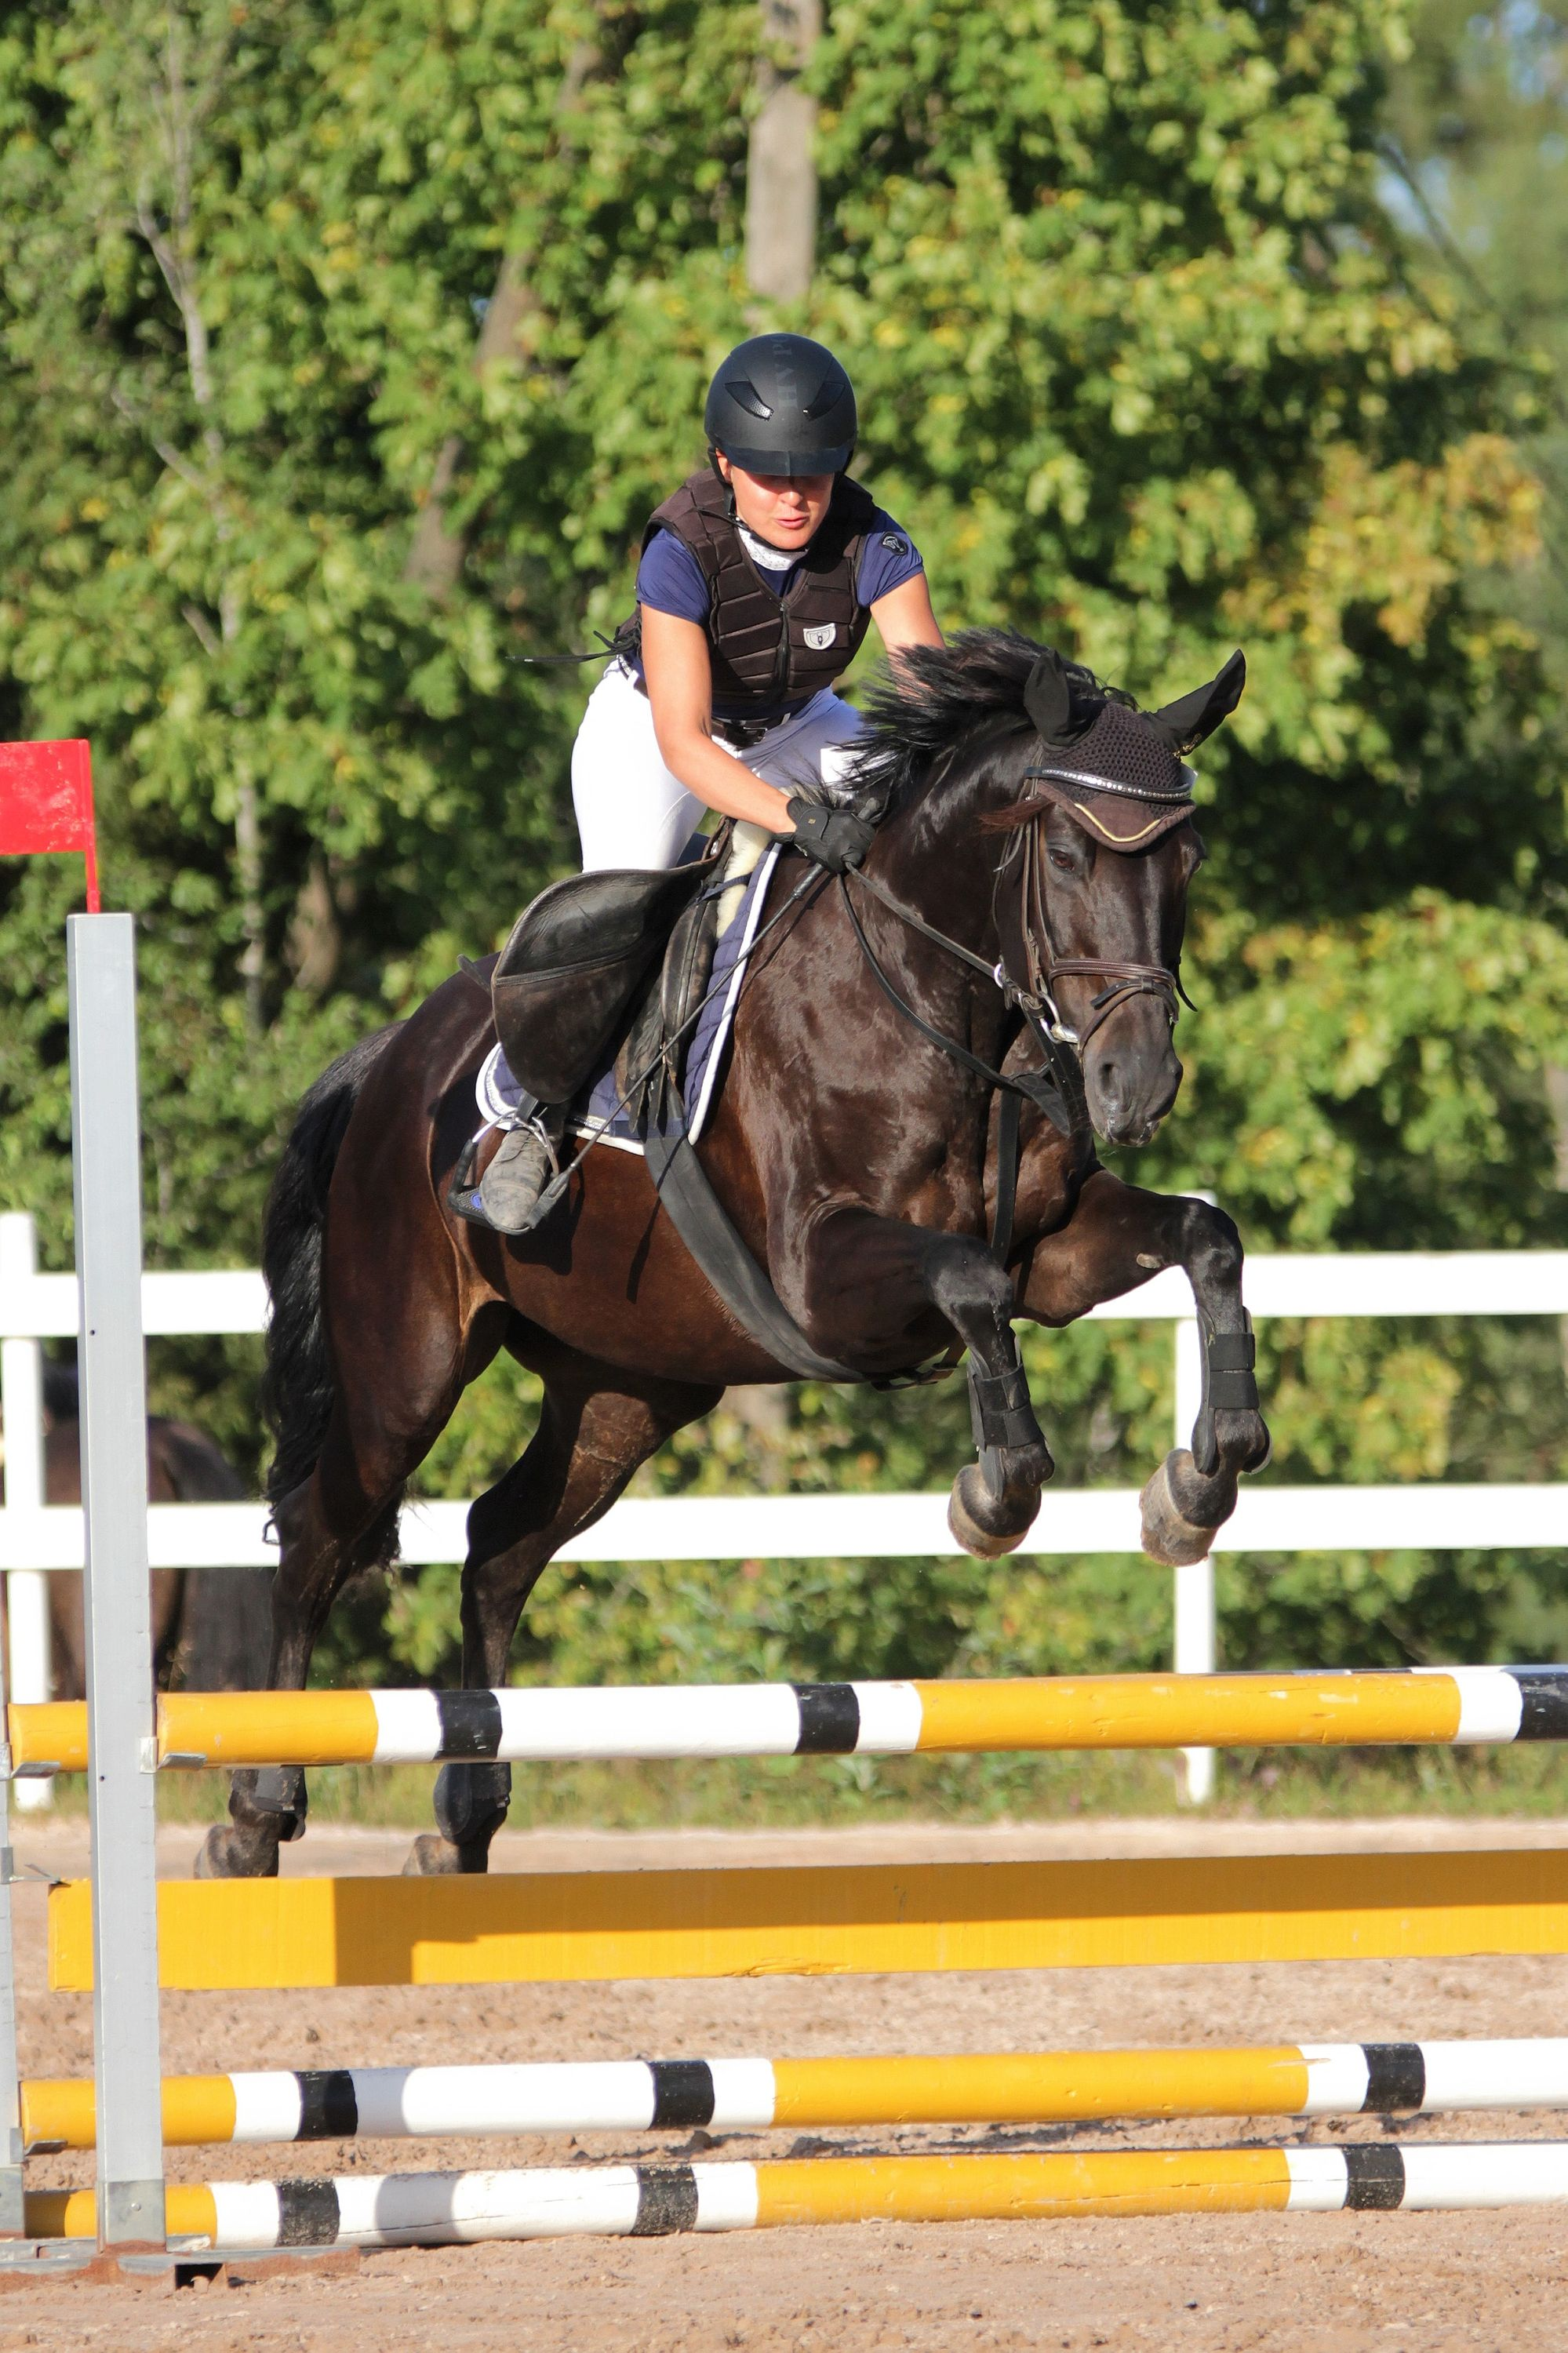 Researcher Identifies Lack of Risk Management in Horse